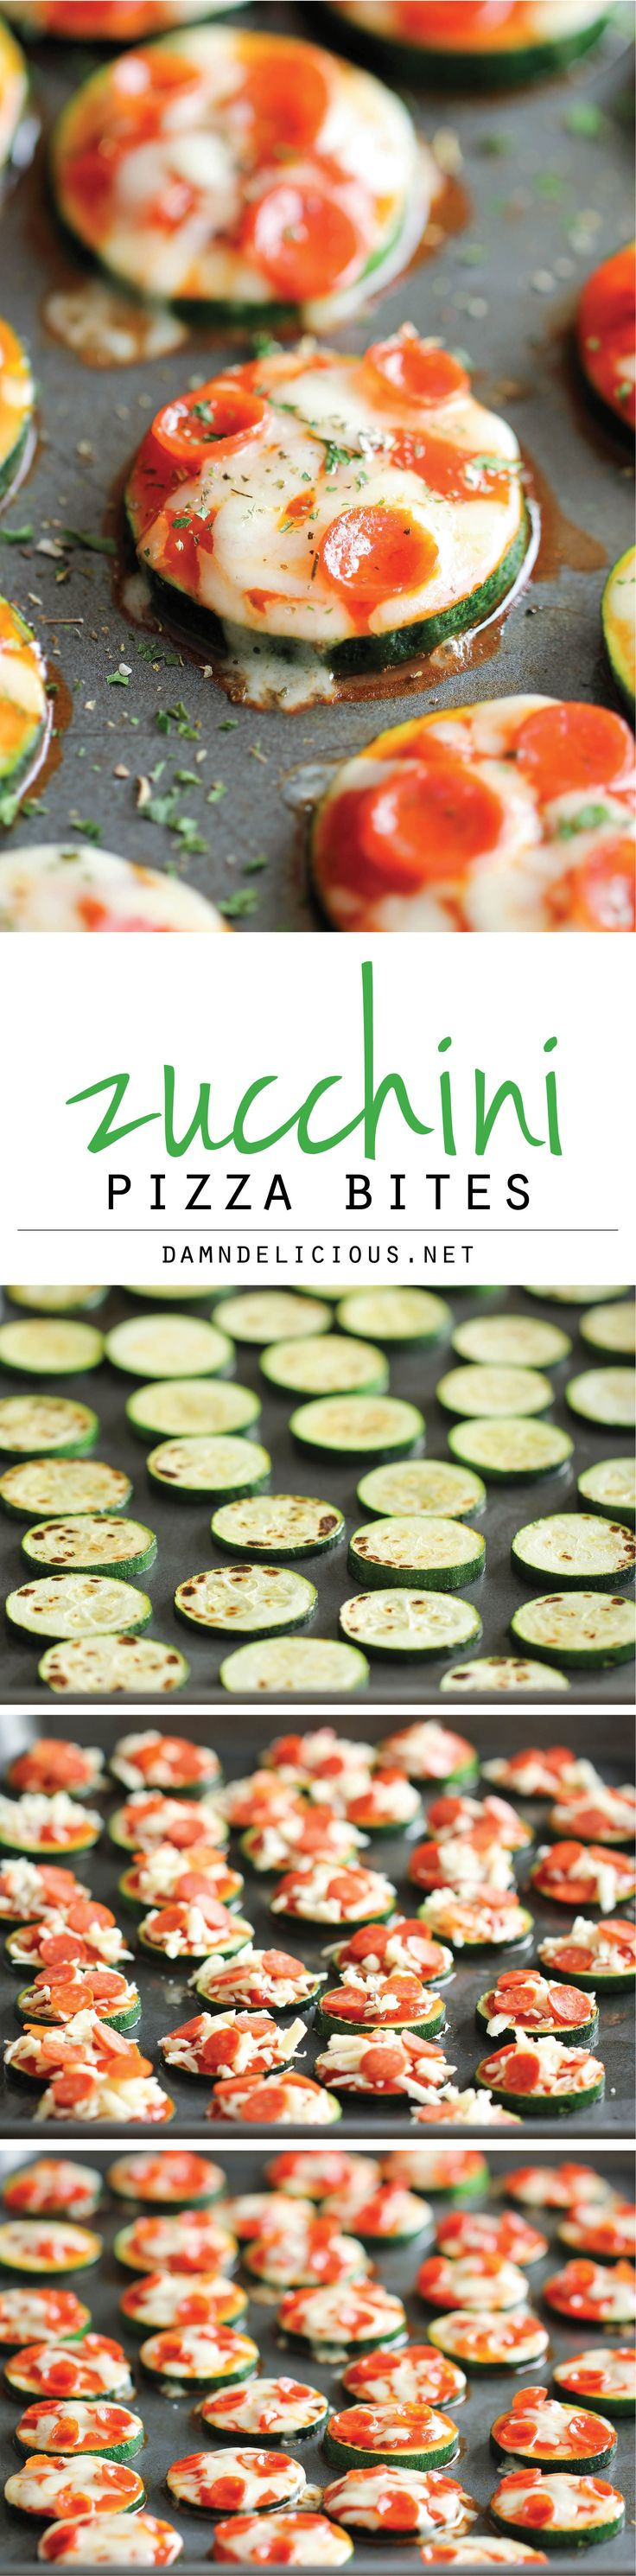 Corilyn Allred, these look yummy and fun! Zucchini Pizza Bites - Healthy, nutritious pizza bites that come together in just 15 minutes with only 5 ingredients!